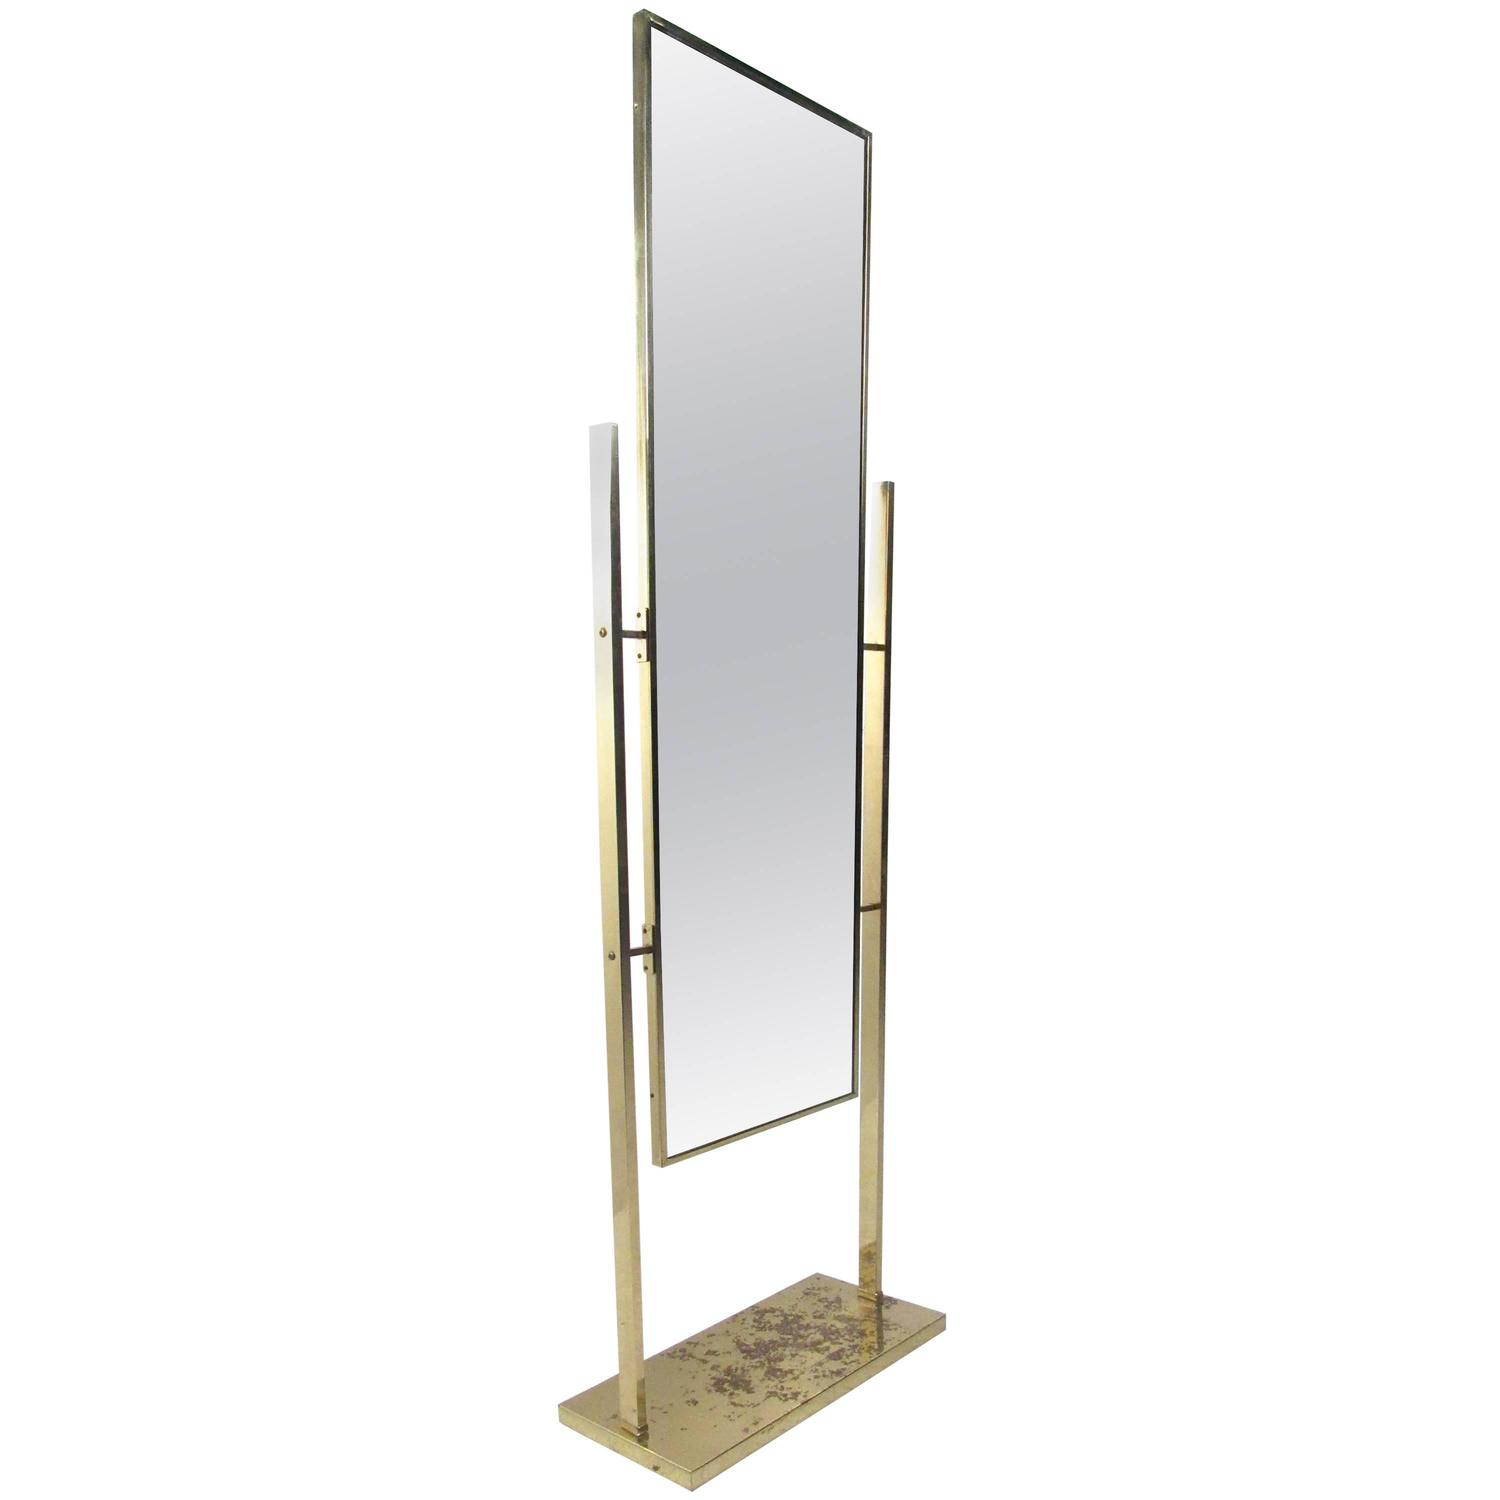 Unique vintage brass finish dressing mirror for sale at for Floor length mirror for sale